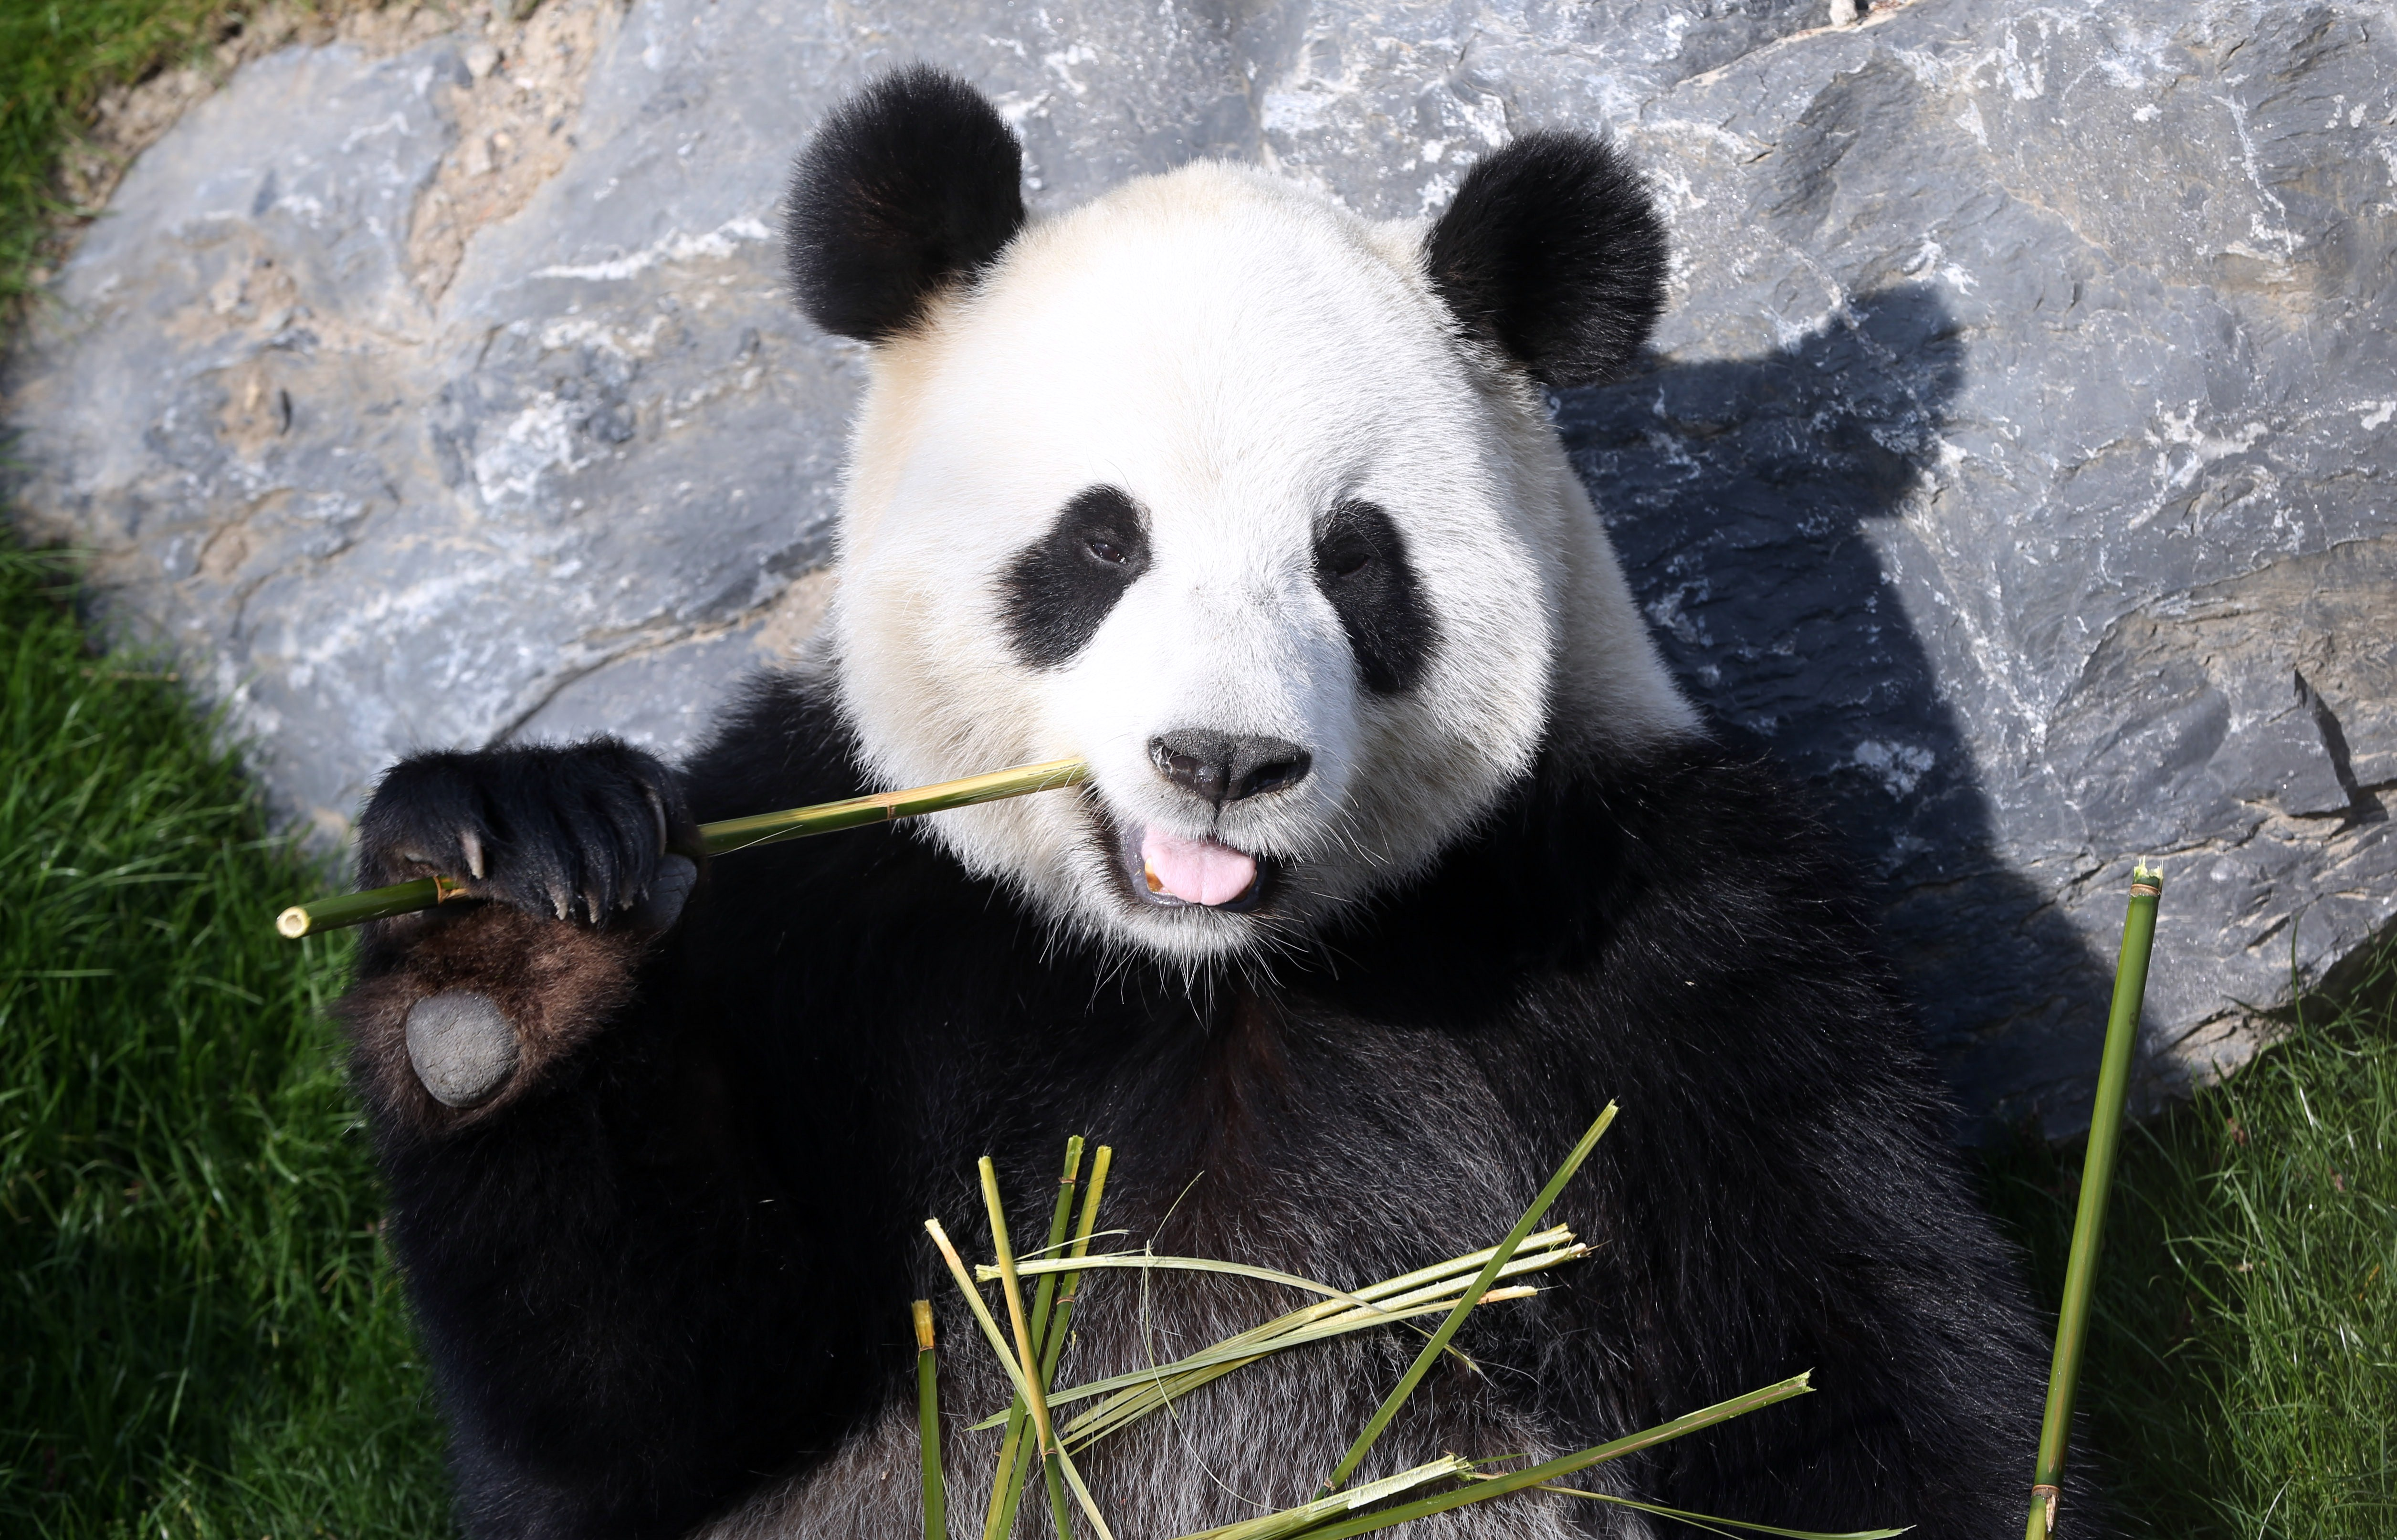 A photo taken on April 1, 2014 shows the giant panda Hao Hao eating bamboo at Pairi Daiza animal park in Brugelette, Belgium.